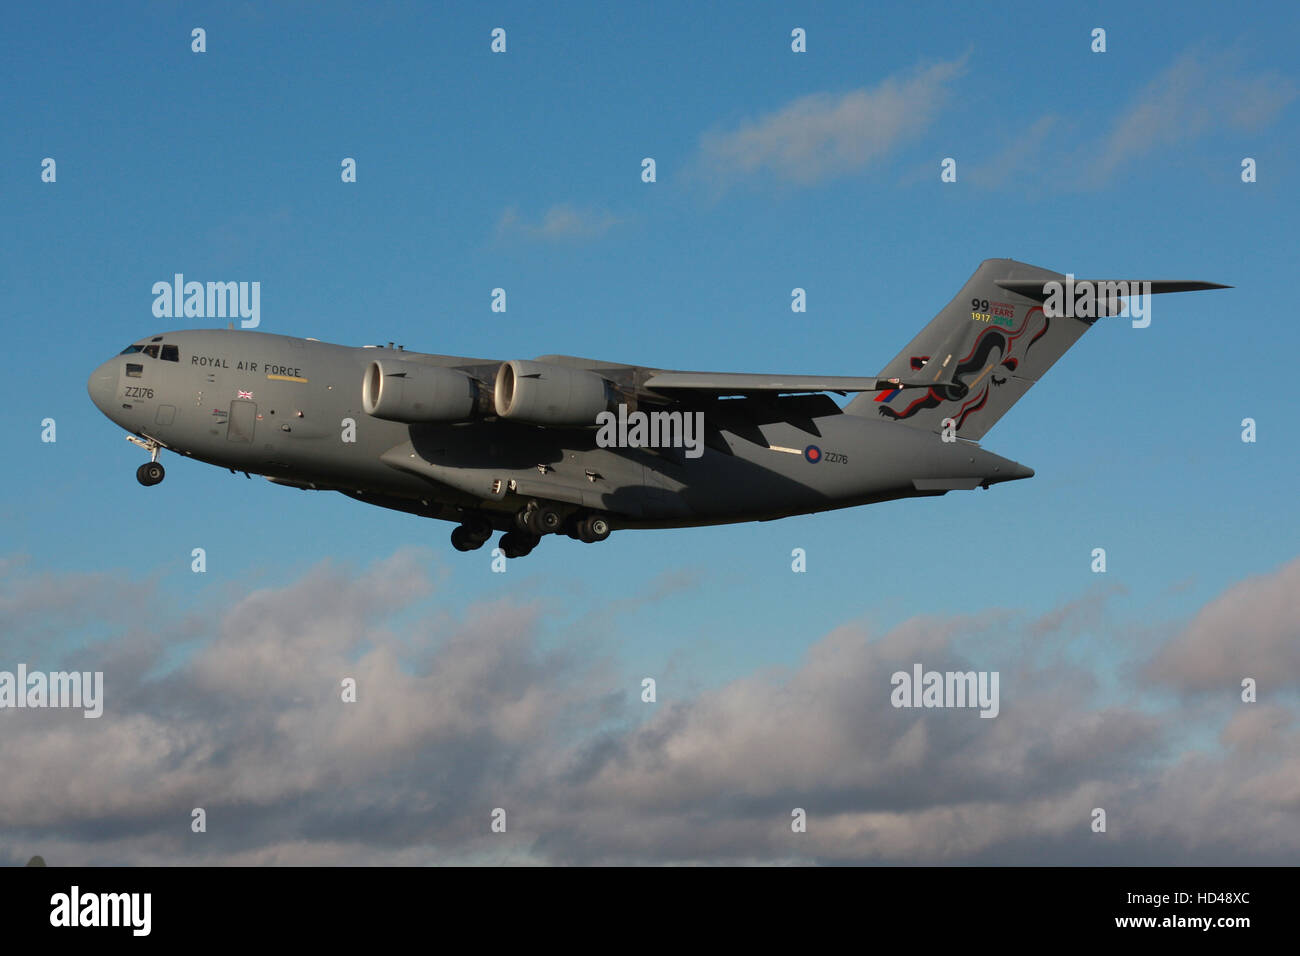 ROYAL AIR FORCE BOEING C17 - Stock Image